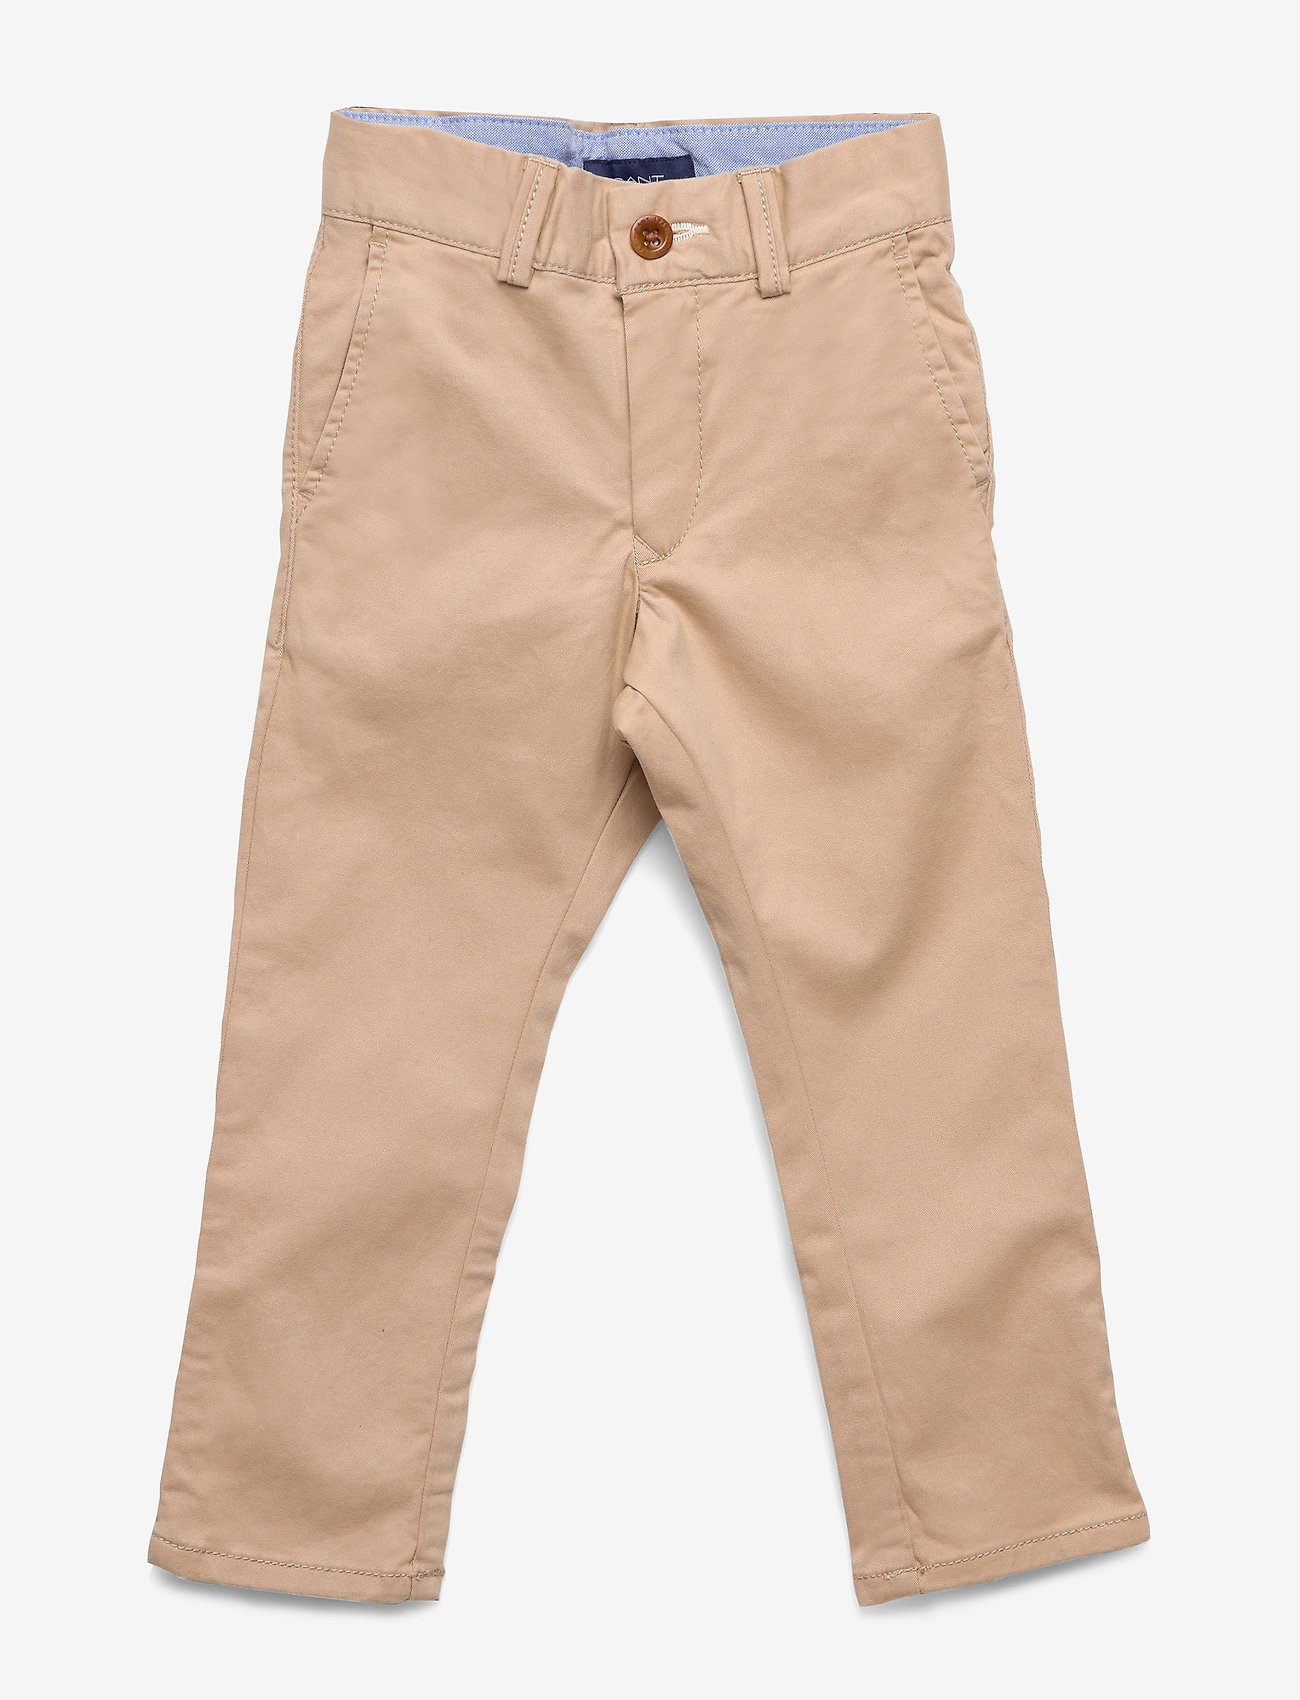 GANT - CHINO PANTS - trousers - dry sand - 0